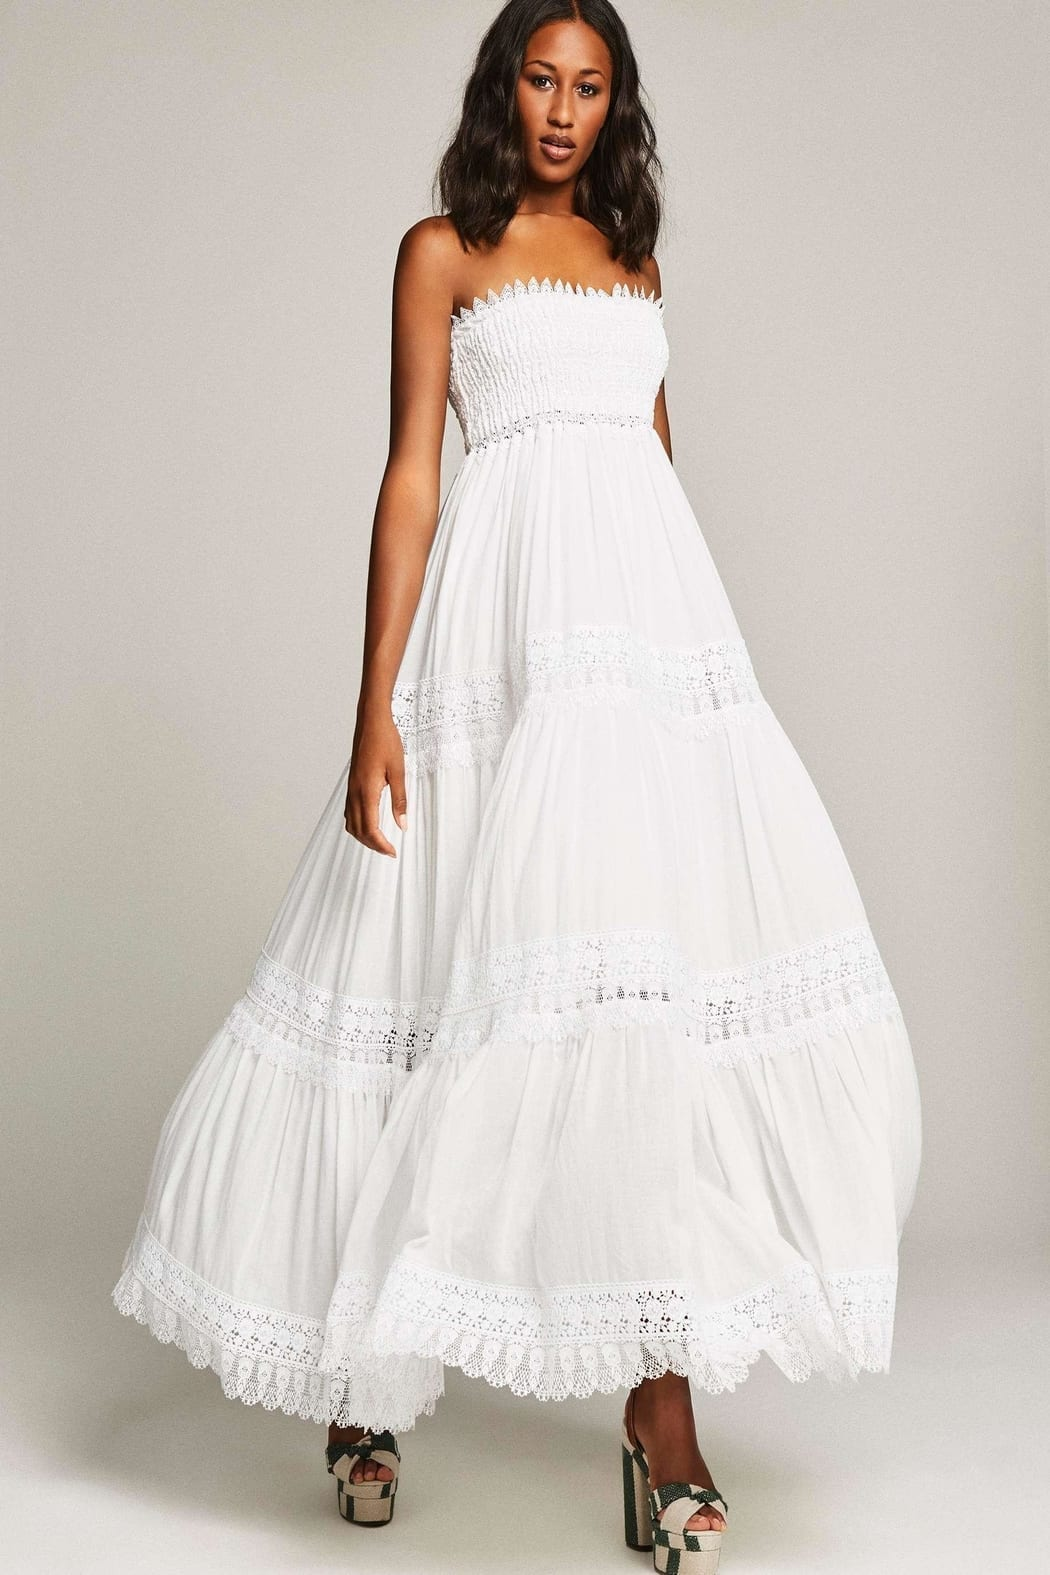 ROUGE PRINCETON Zoe Long White Dress